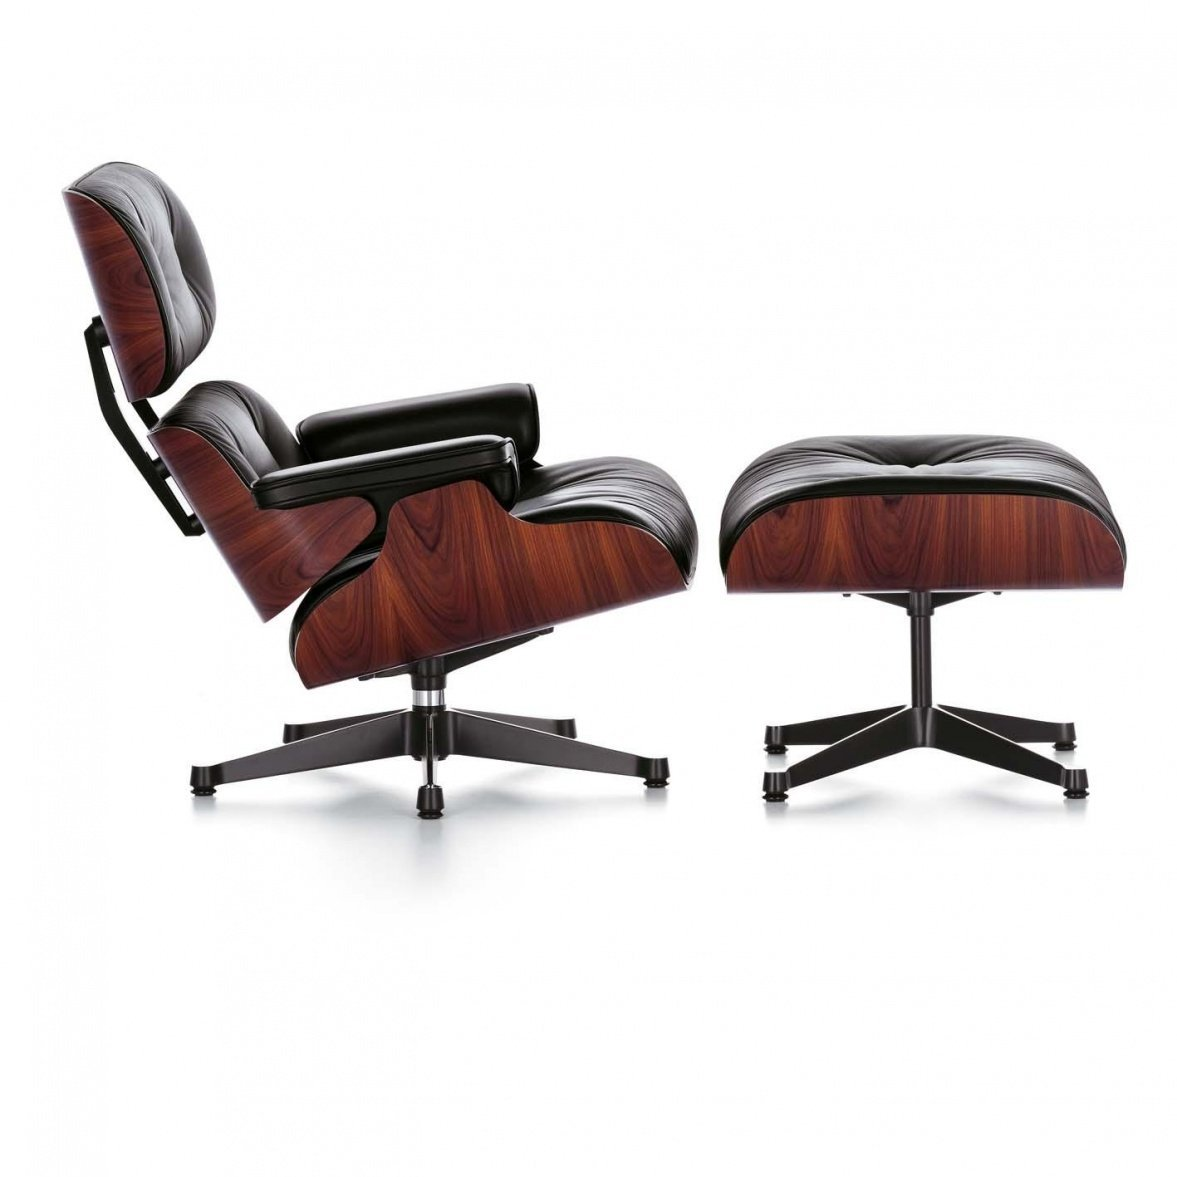 vitra eames lounge sessel leder aequivalere. Black Bedroom Furniture Sets. Home Design Ideas